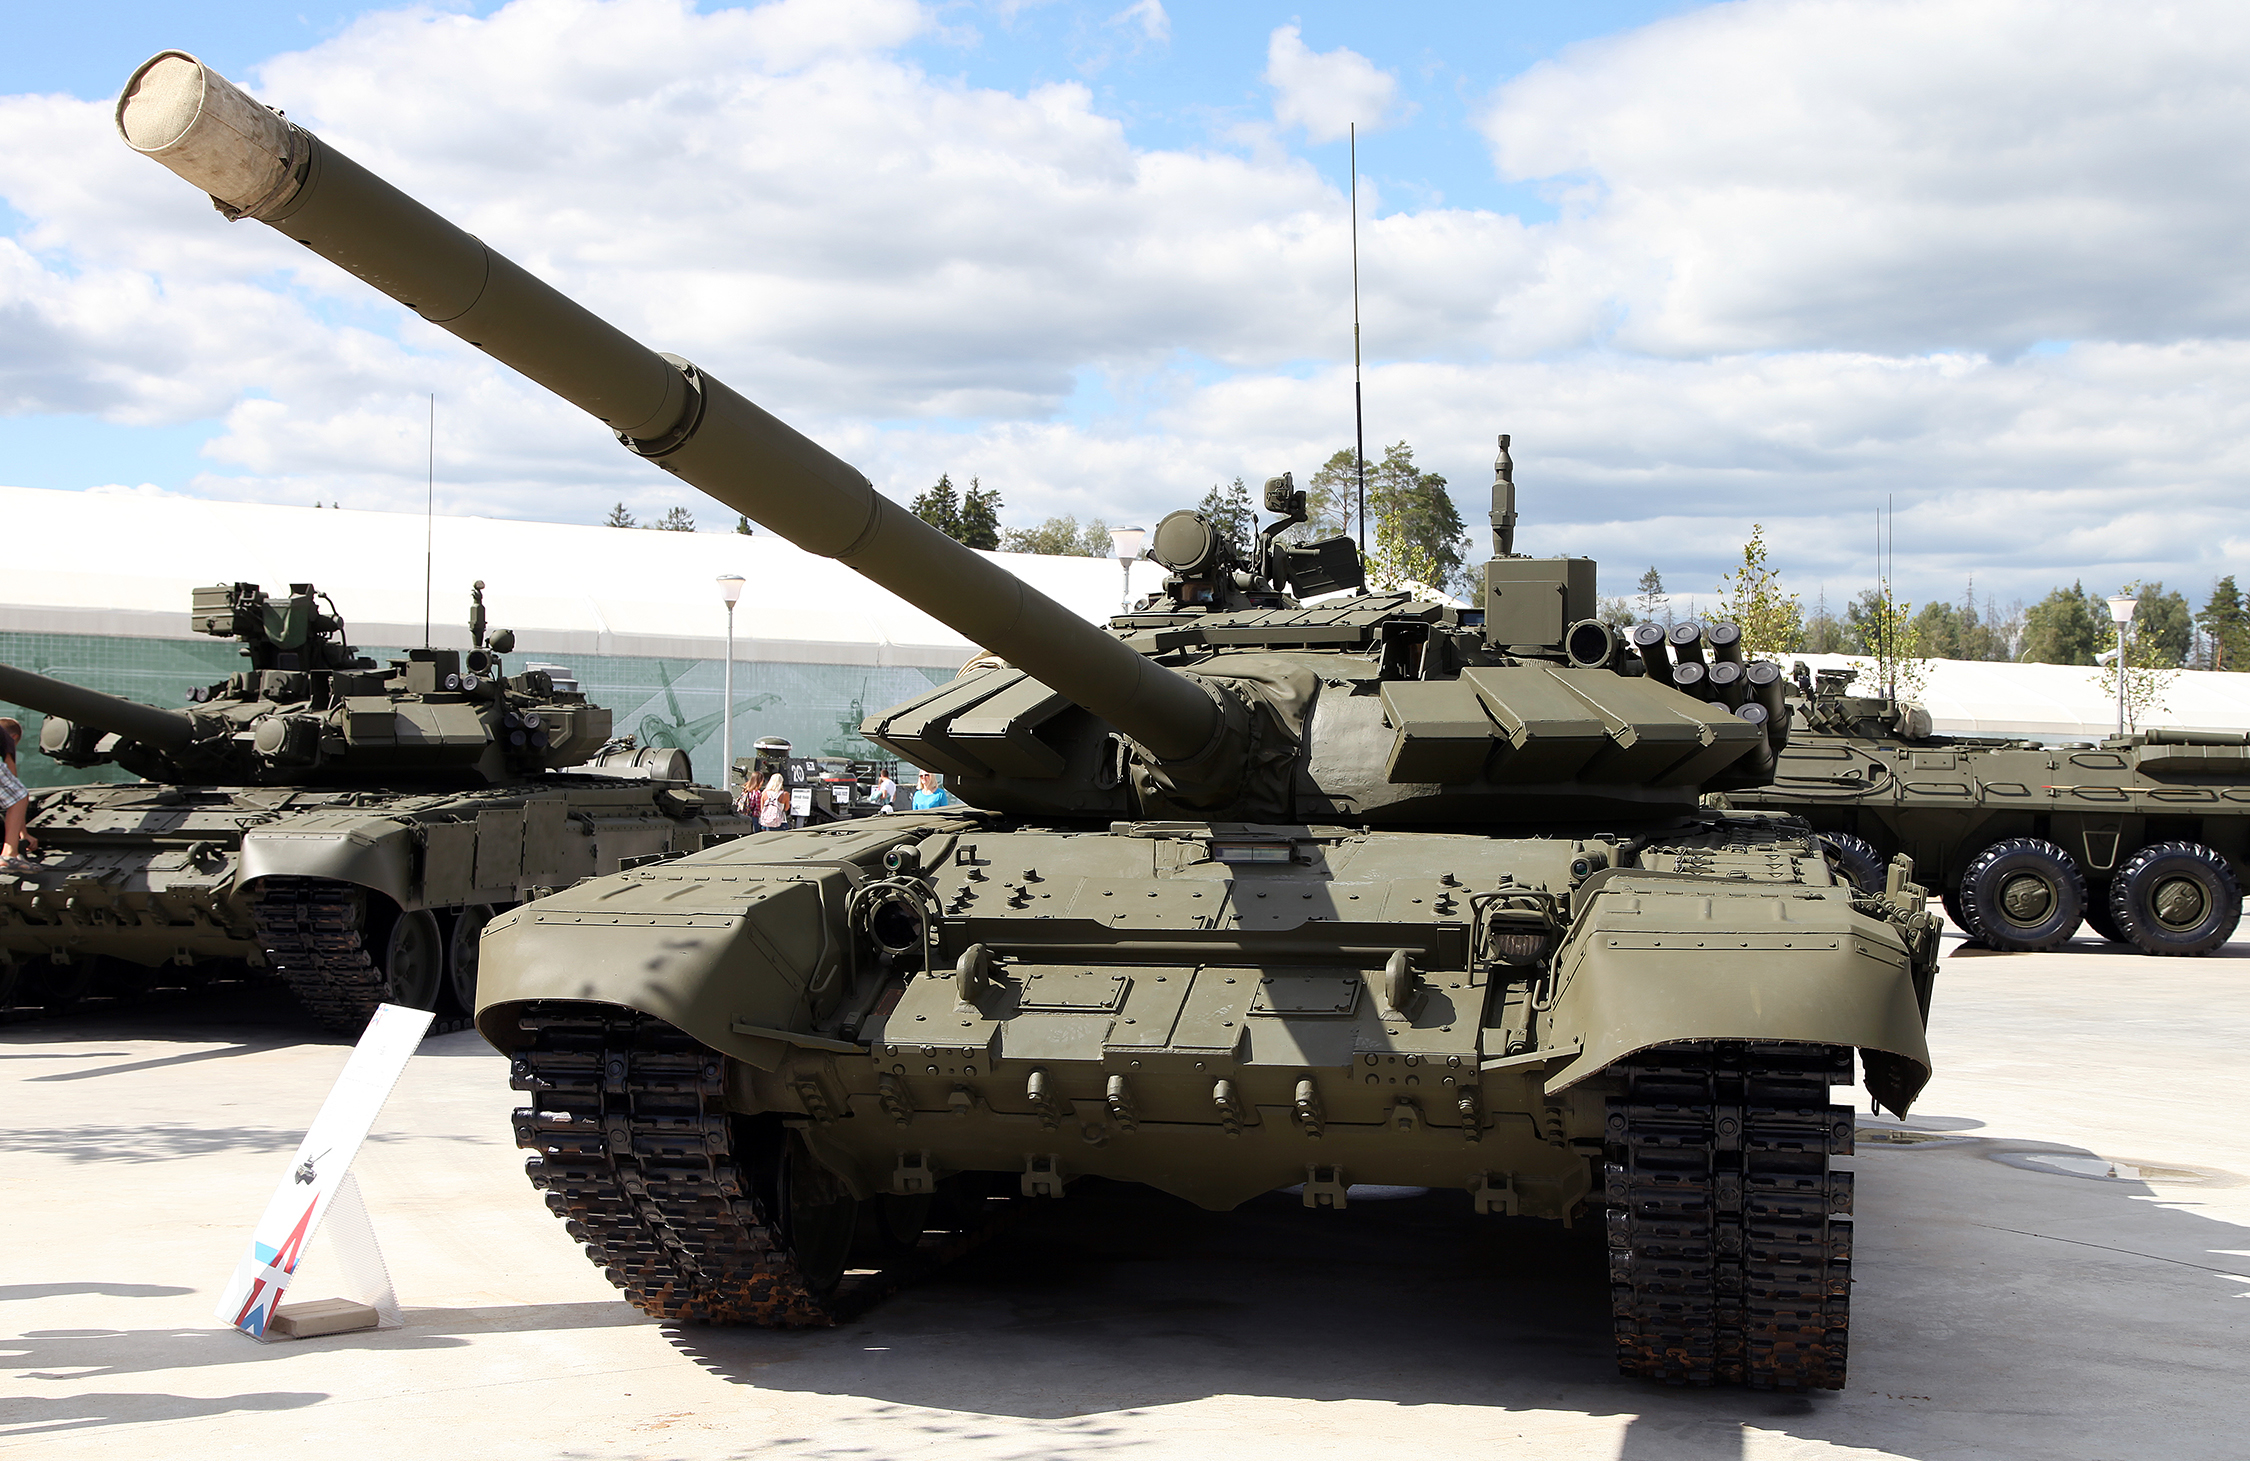 File:T-72B3.jpg - Wikimedia Commons